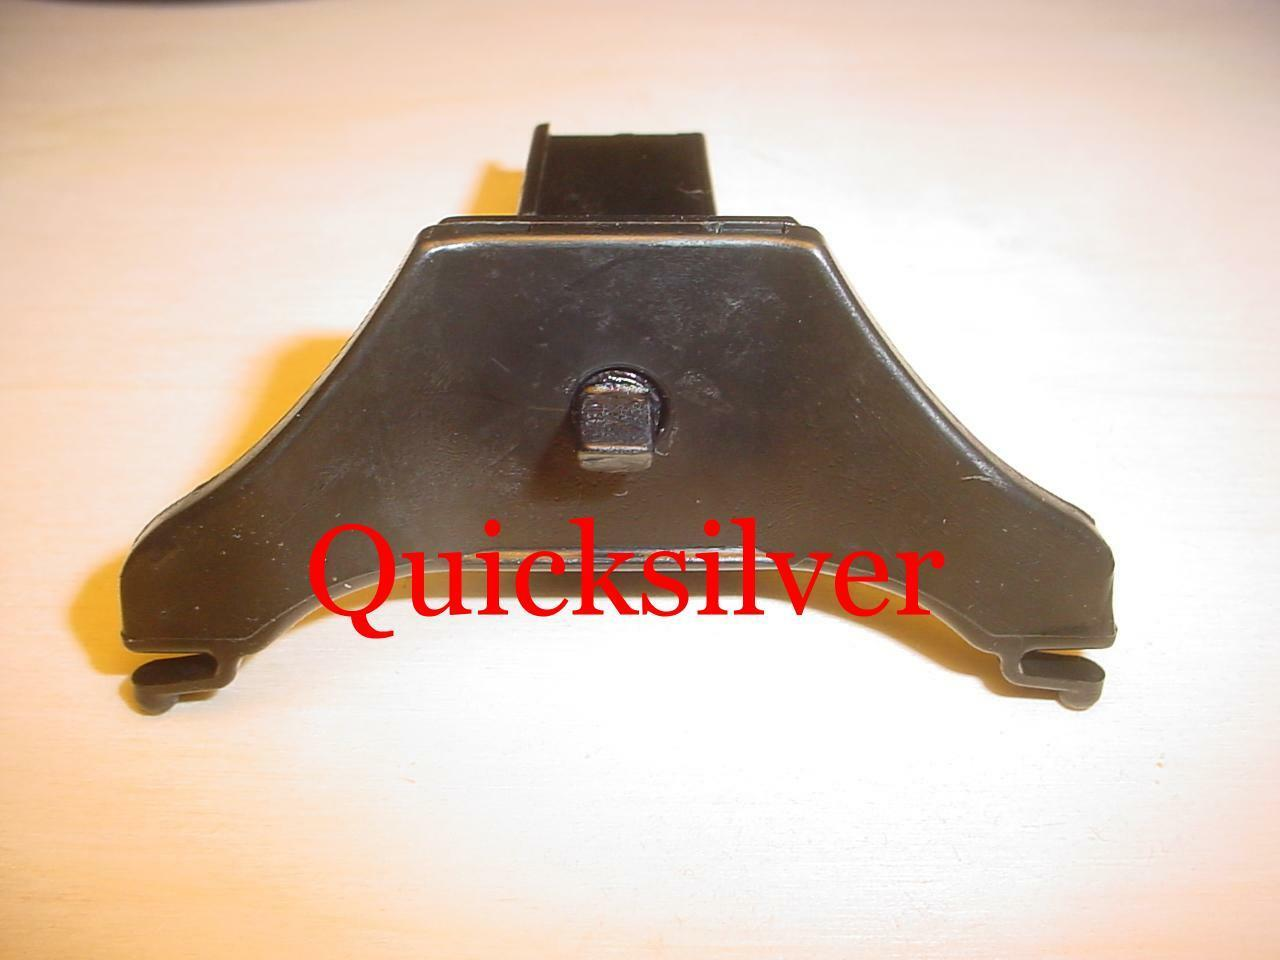 1992 1995 Mitsubishi Expo Lrv Fuel Filler Door Latch Assy New Oem 1 Of 4 See More